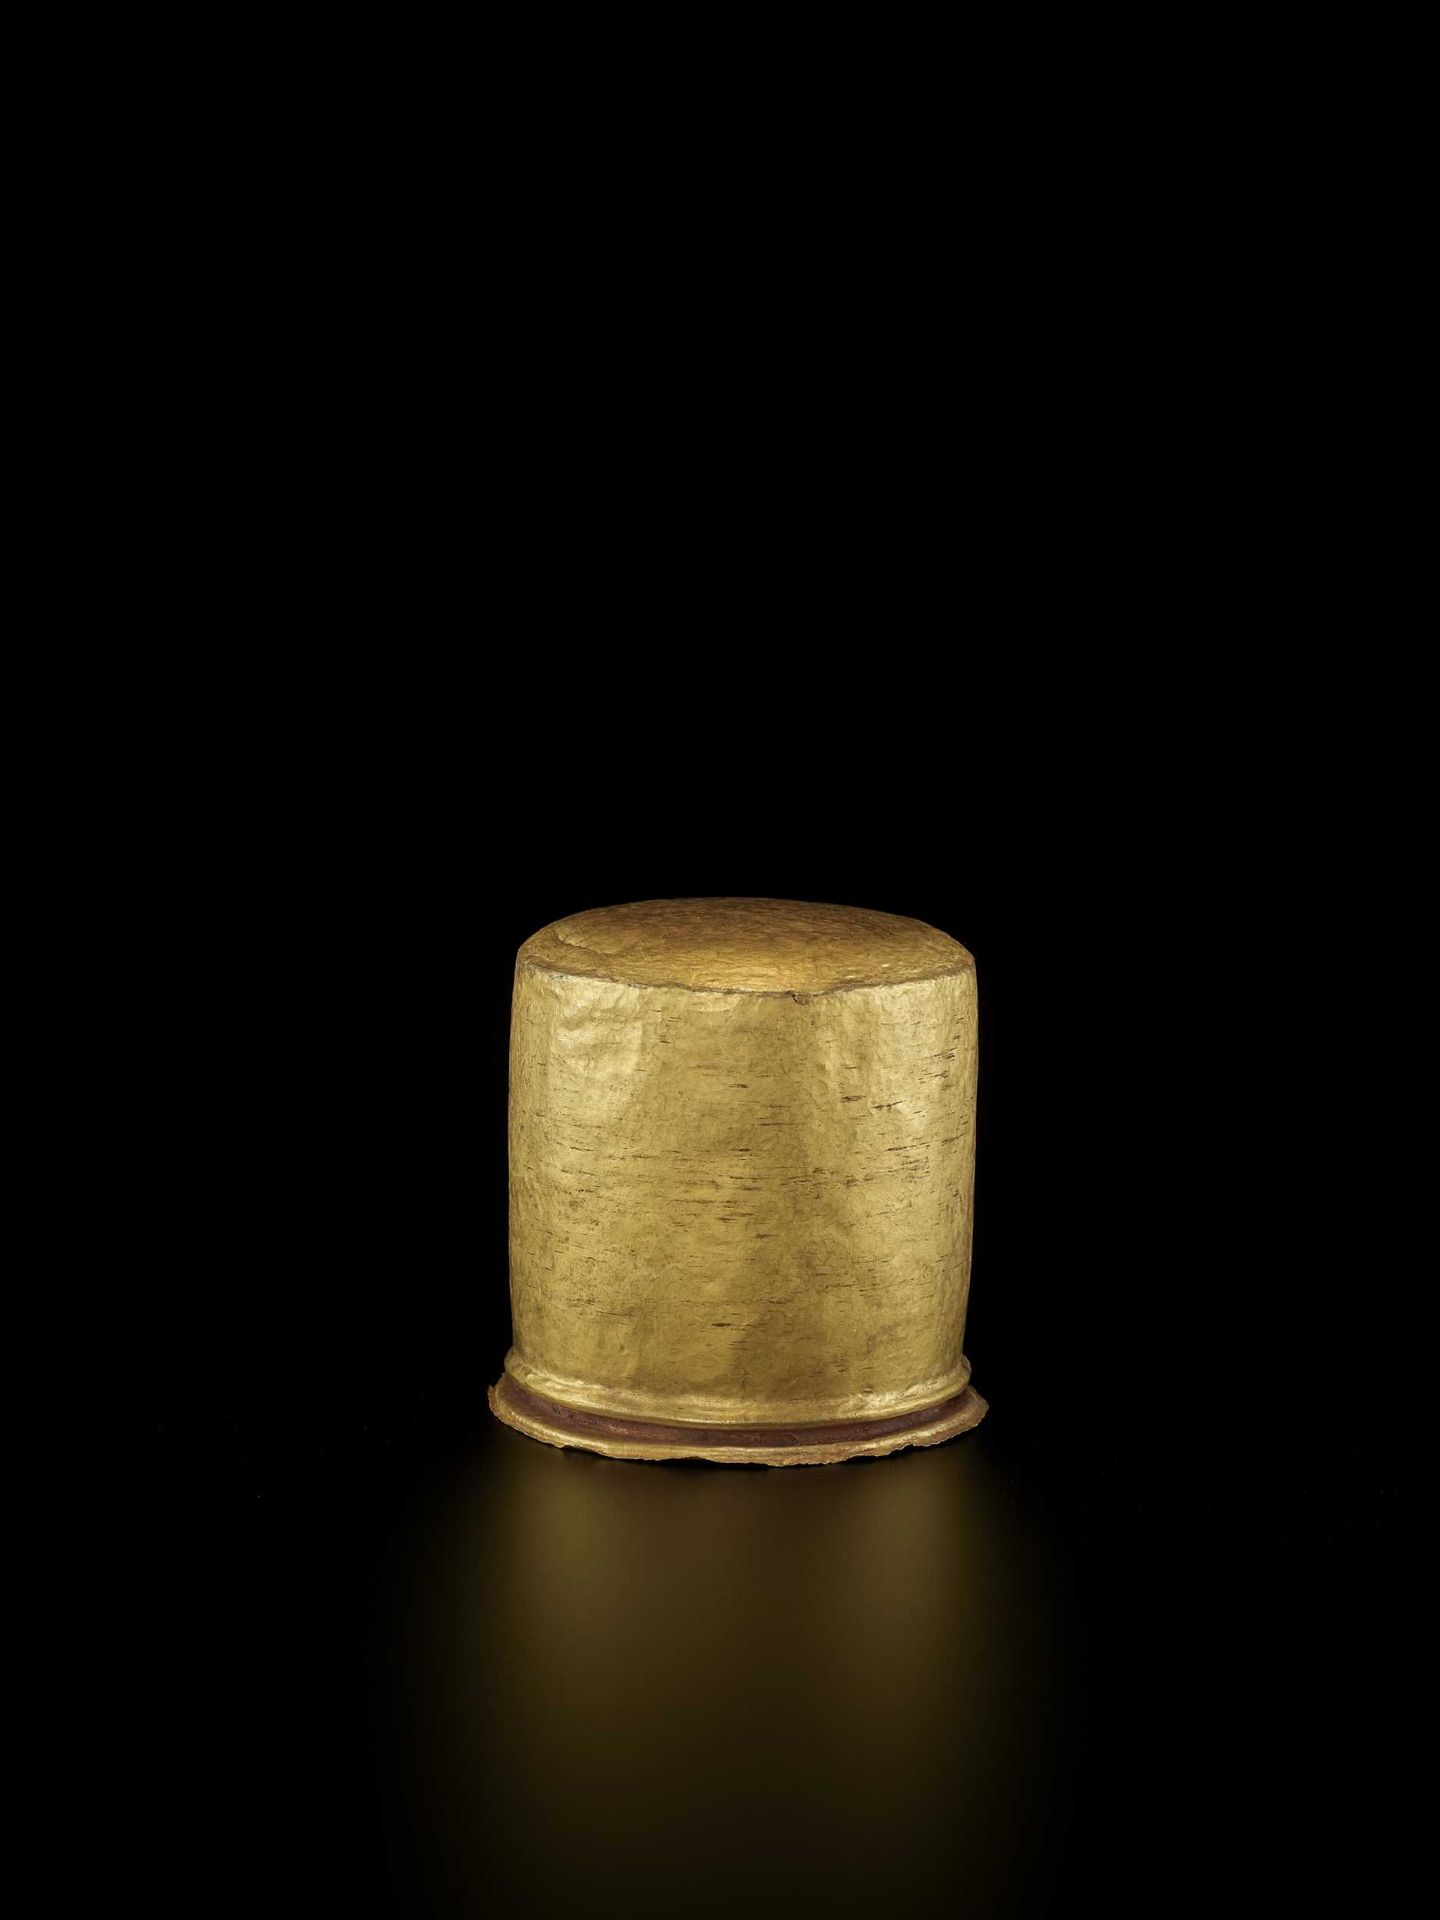 AN EXCEPTIONAL AND RARE CHAM GOLD REPOUSSÉ LINGAM WITH SHIVA'S LOCKS OF HAIR - Bild 5 aus 8